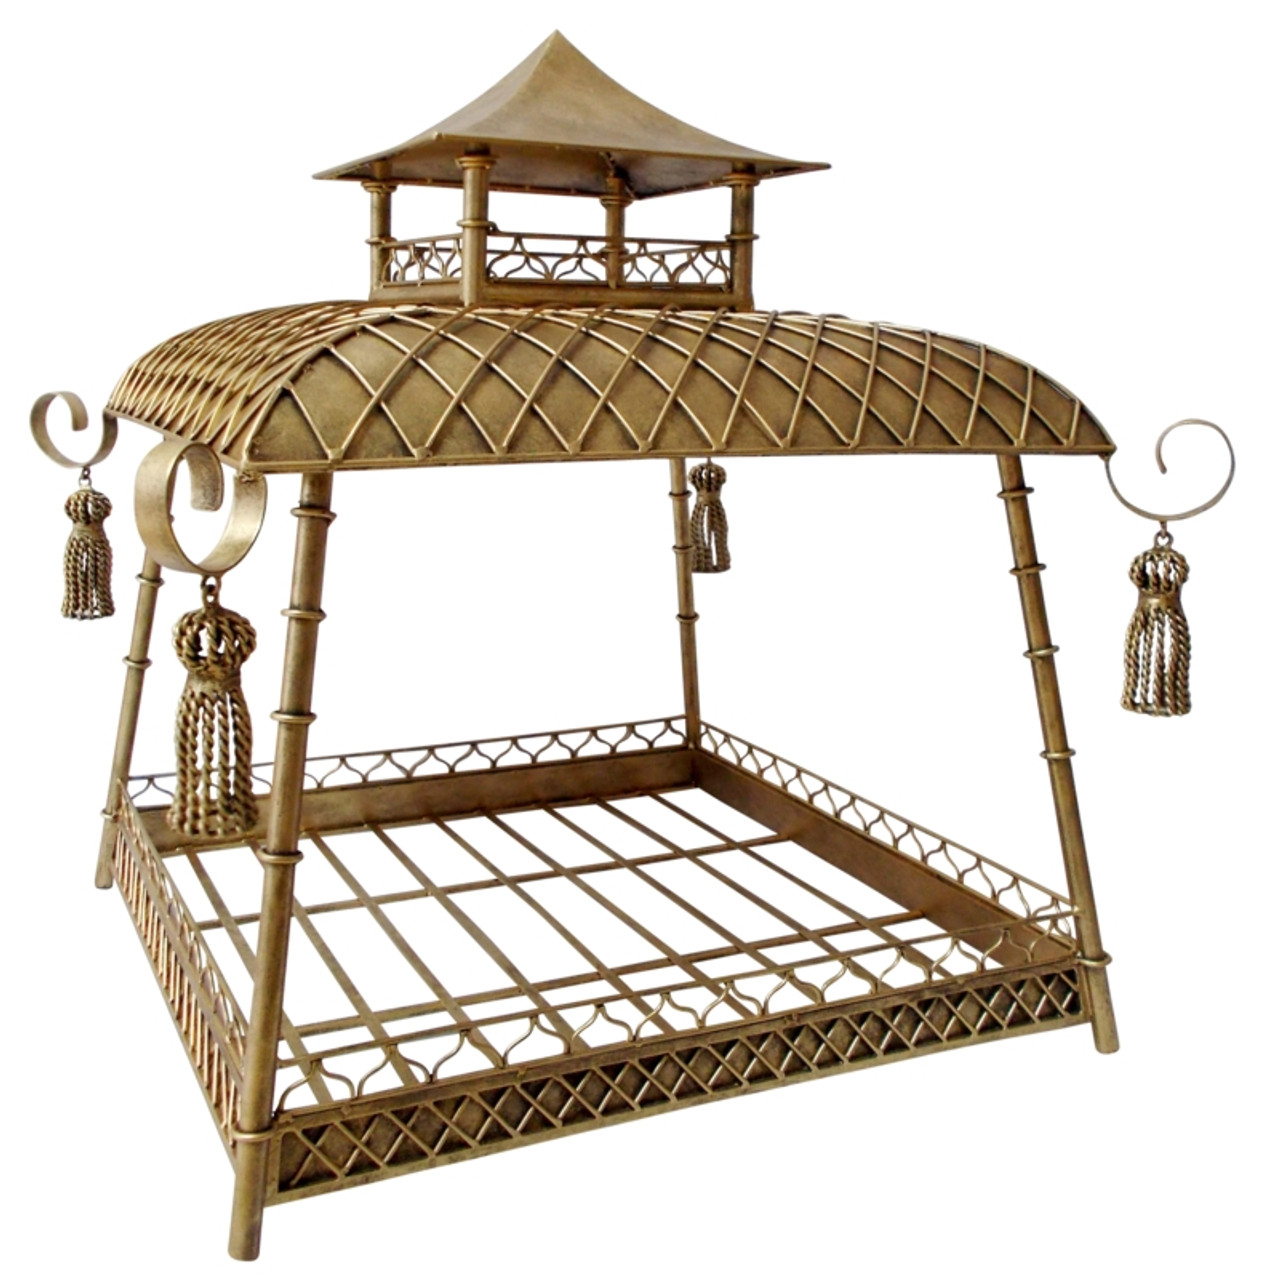 Picture of: Wrought Iron And Tole Pagoda Style Dog Bed Rockstar Puppy